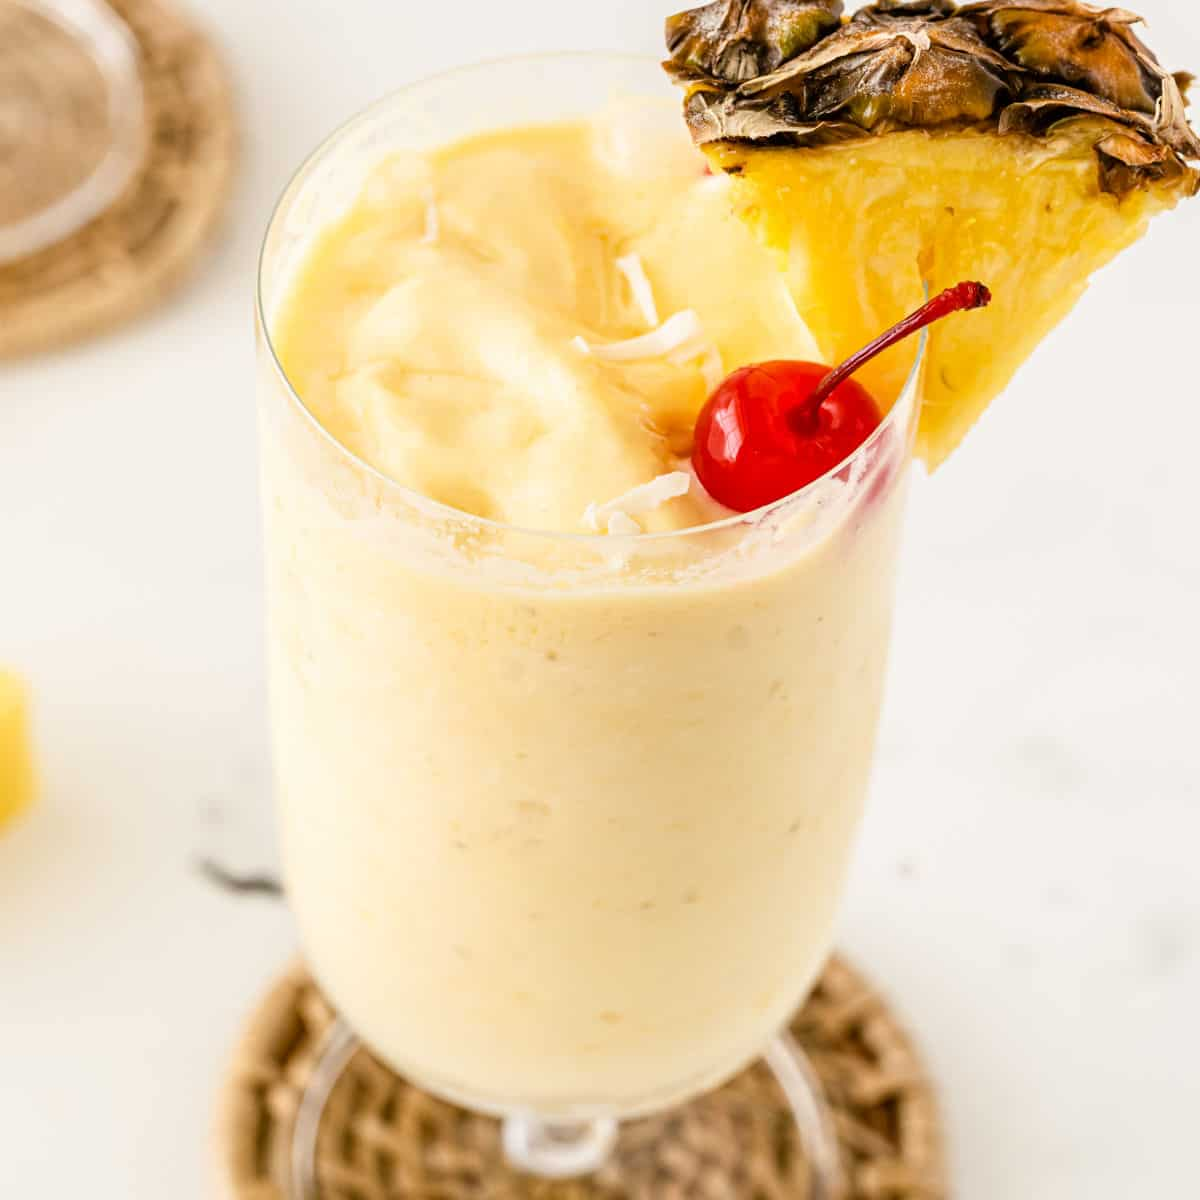 square image of a pineapple rum slushie garnished with a cherry, coconut flakes, and a wedge of pinepple